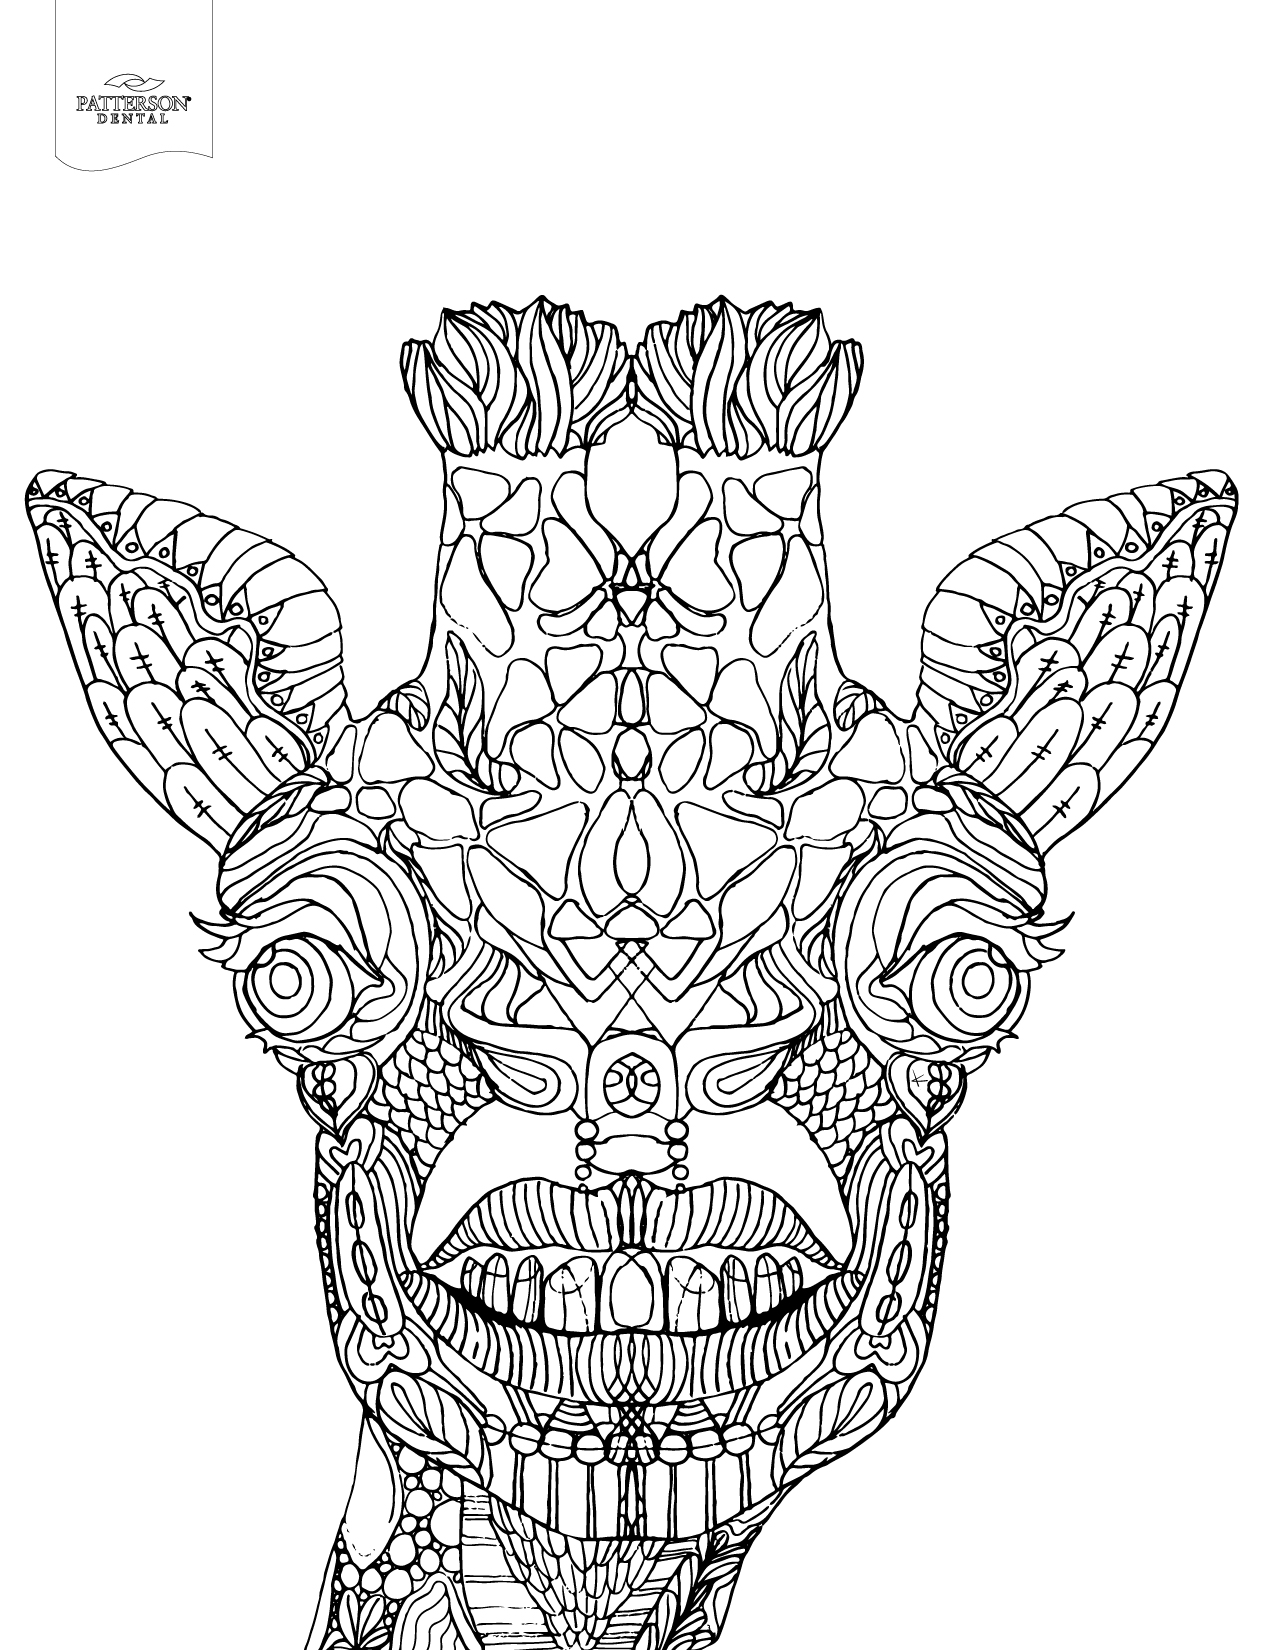 coloring sheet for adults complex coloring pages for teens and adults best for coloring sheet adults